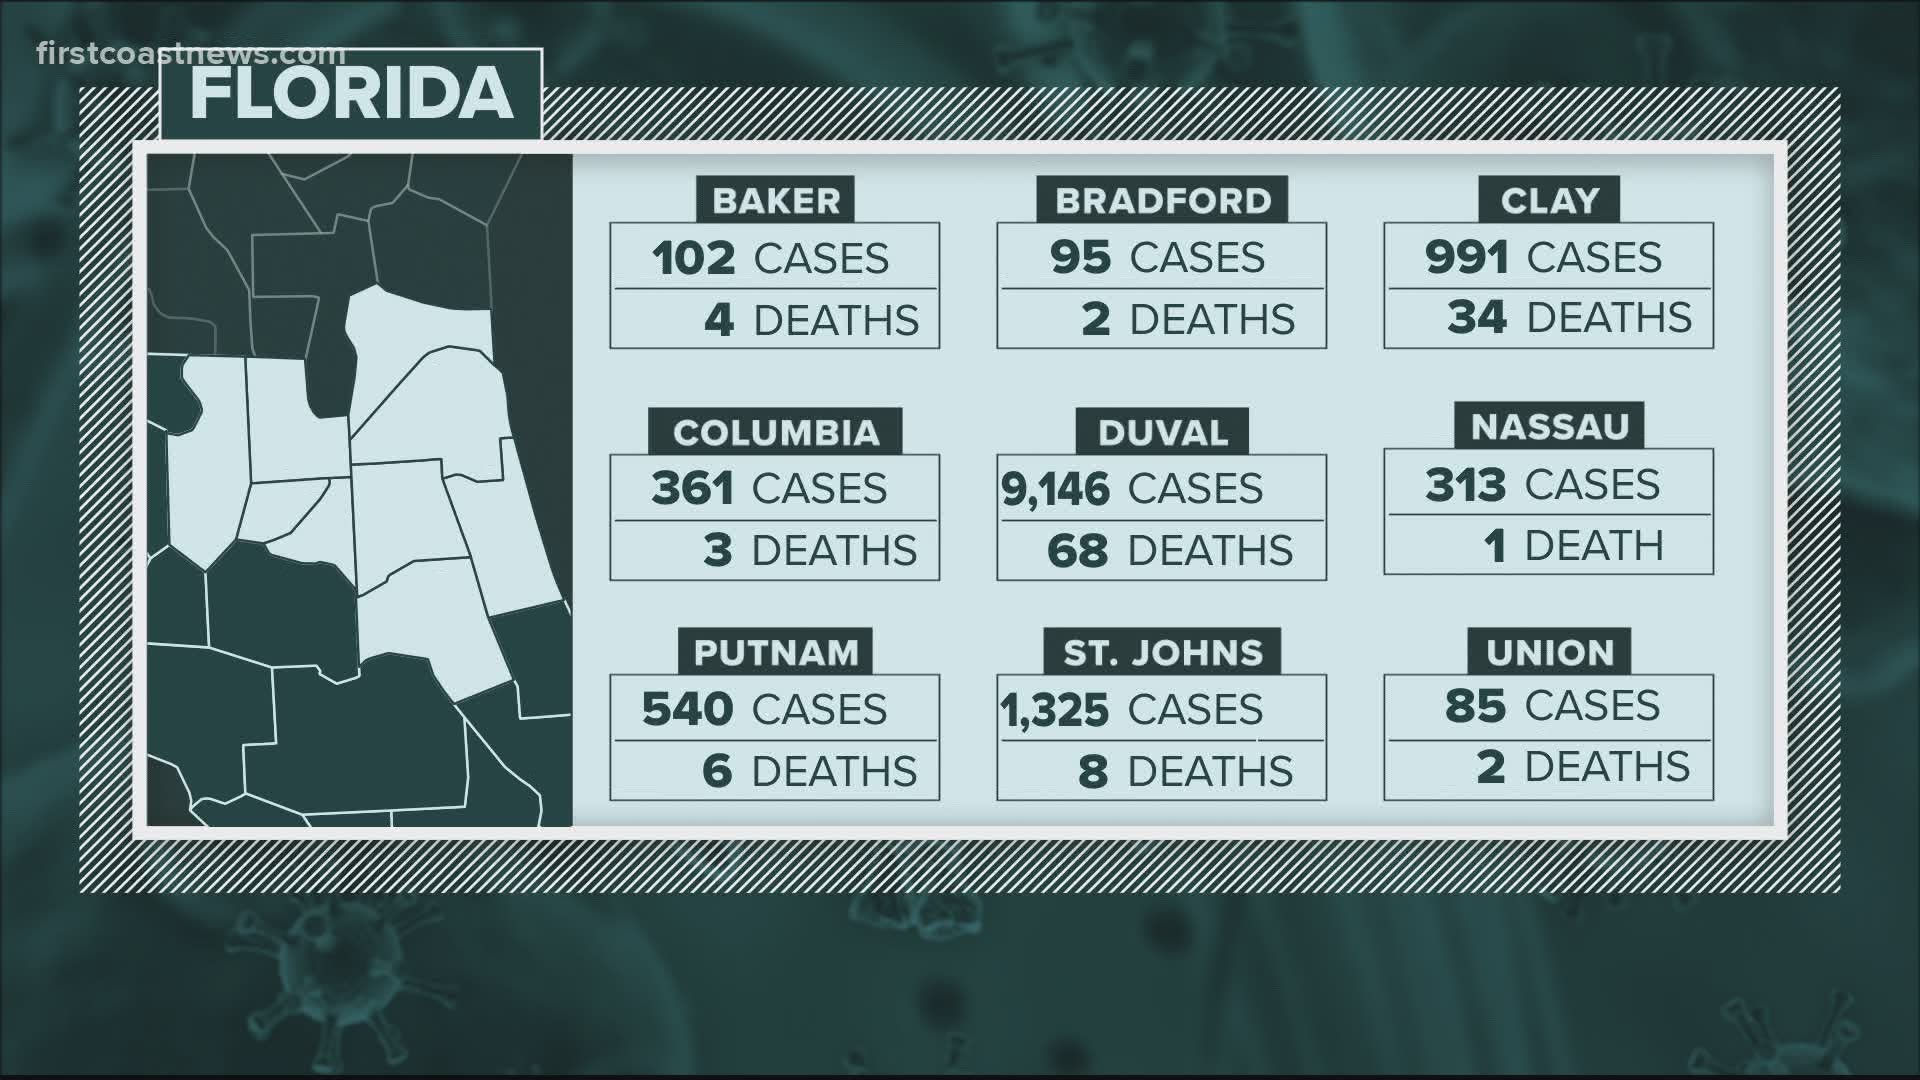 As Florida S Covid 19 Cases Rise Deaths And Hospitalizations Plummet Firstcoastnews Com